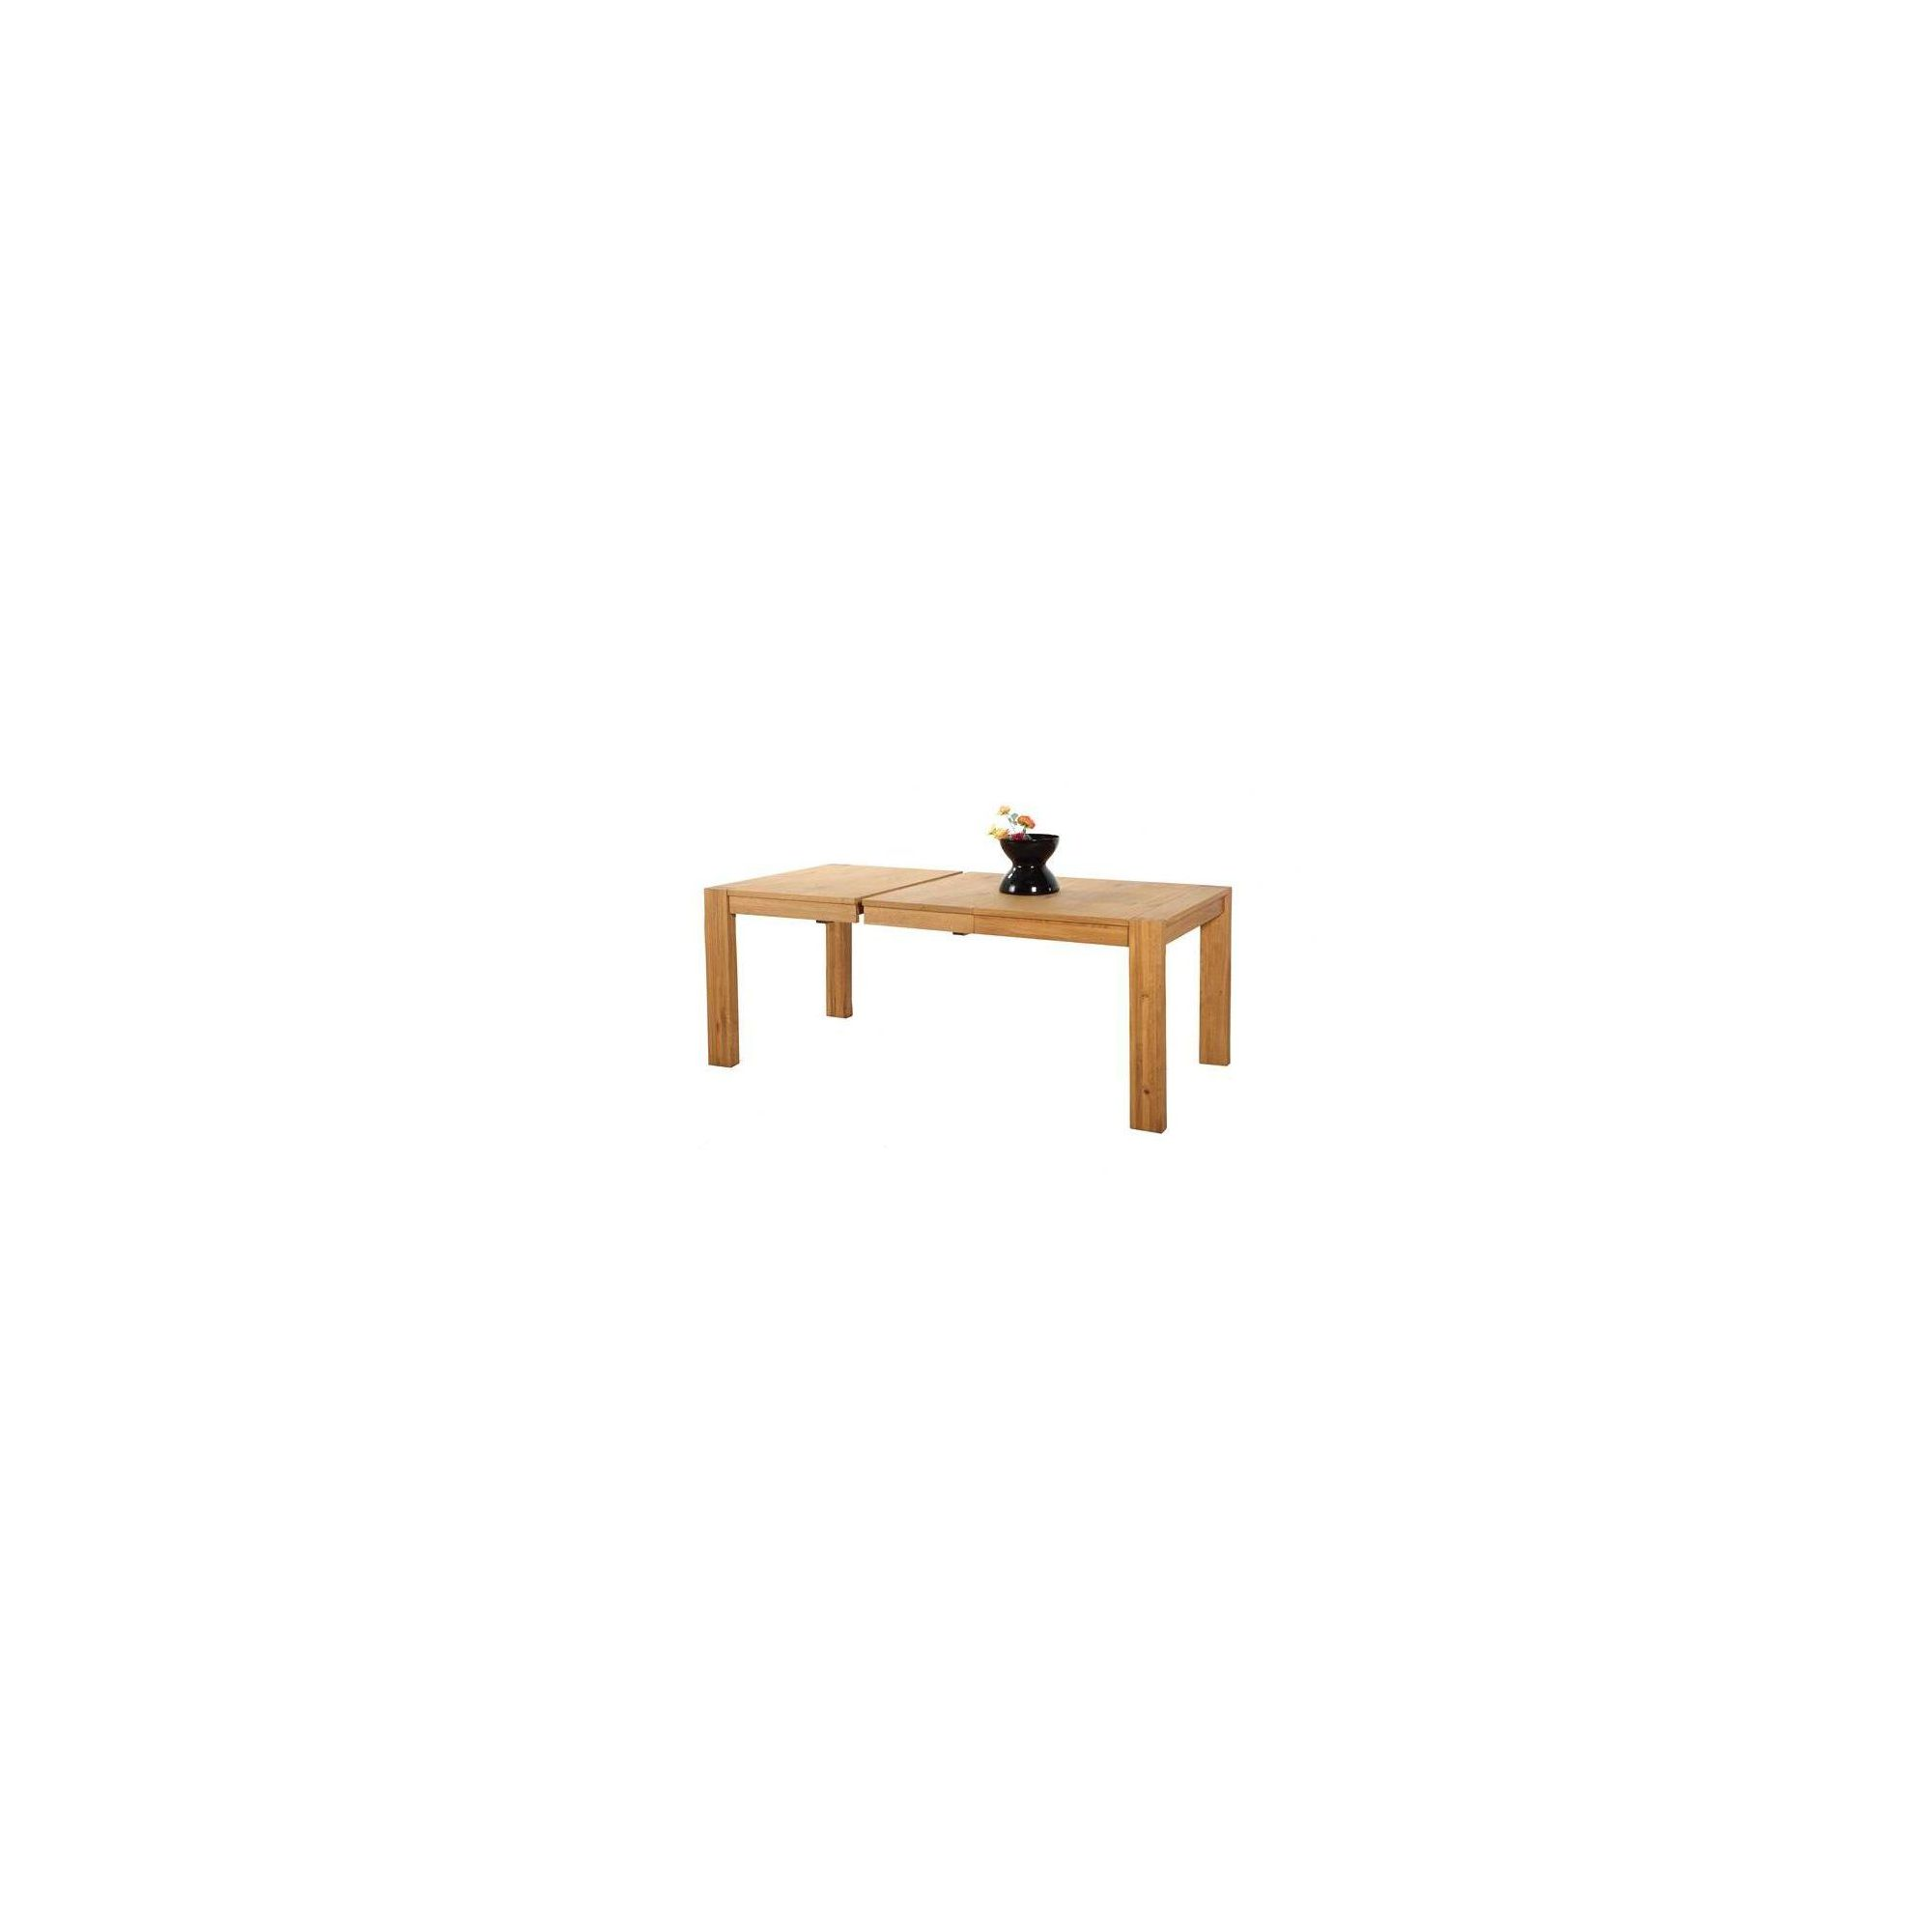 Oakinsen Clermont 150cm-200cm Extending Dining Table